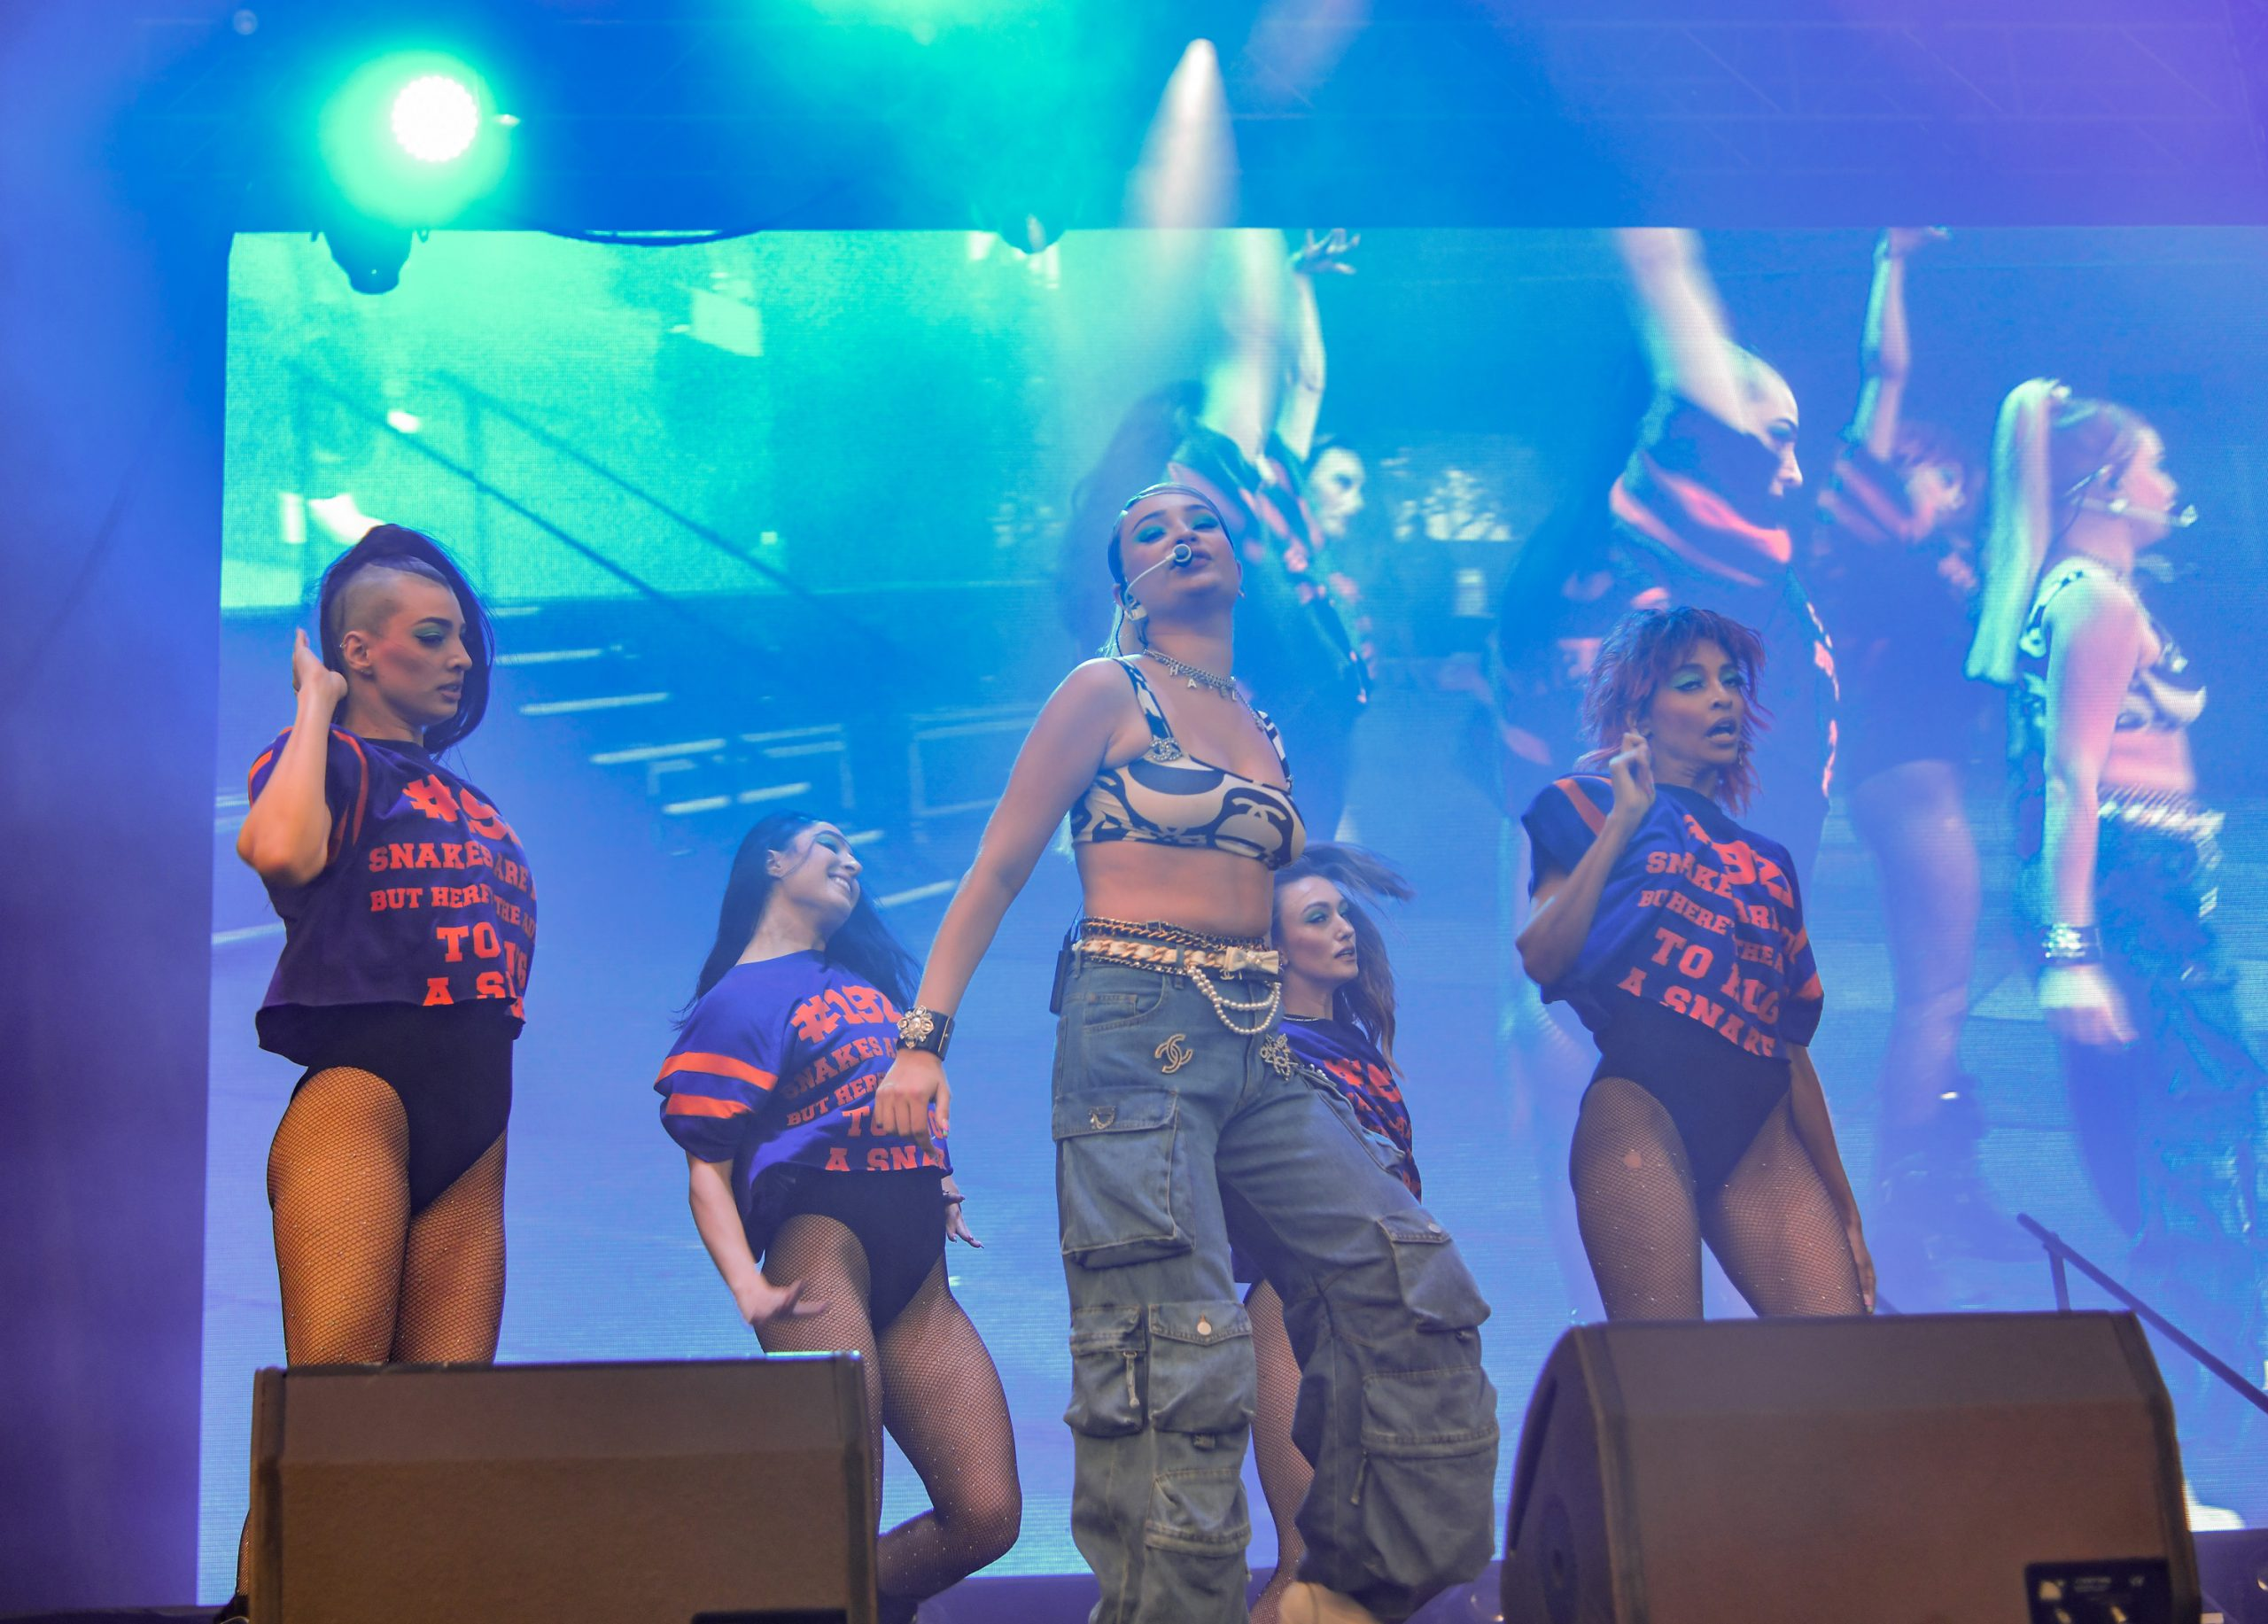 Miley Cyrus Puts The Icing On The Cake To A Great First Day Of Lollapalooza 9